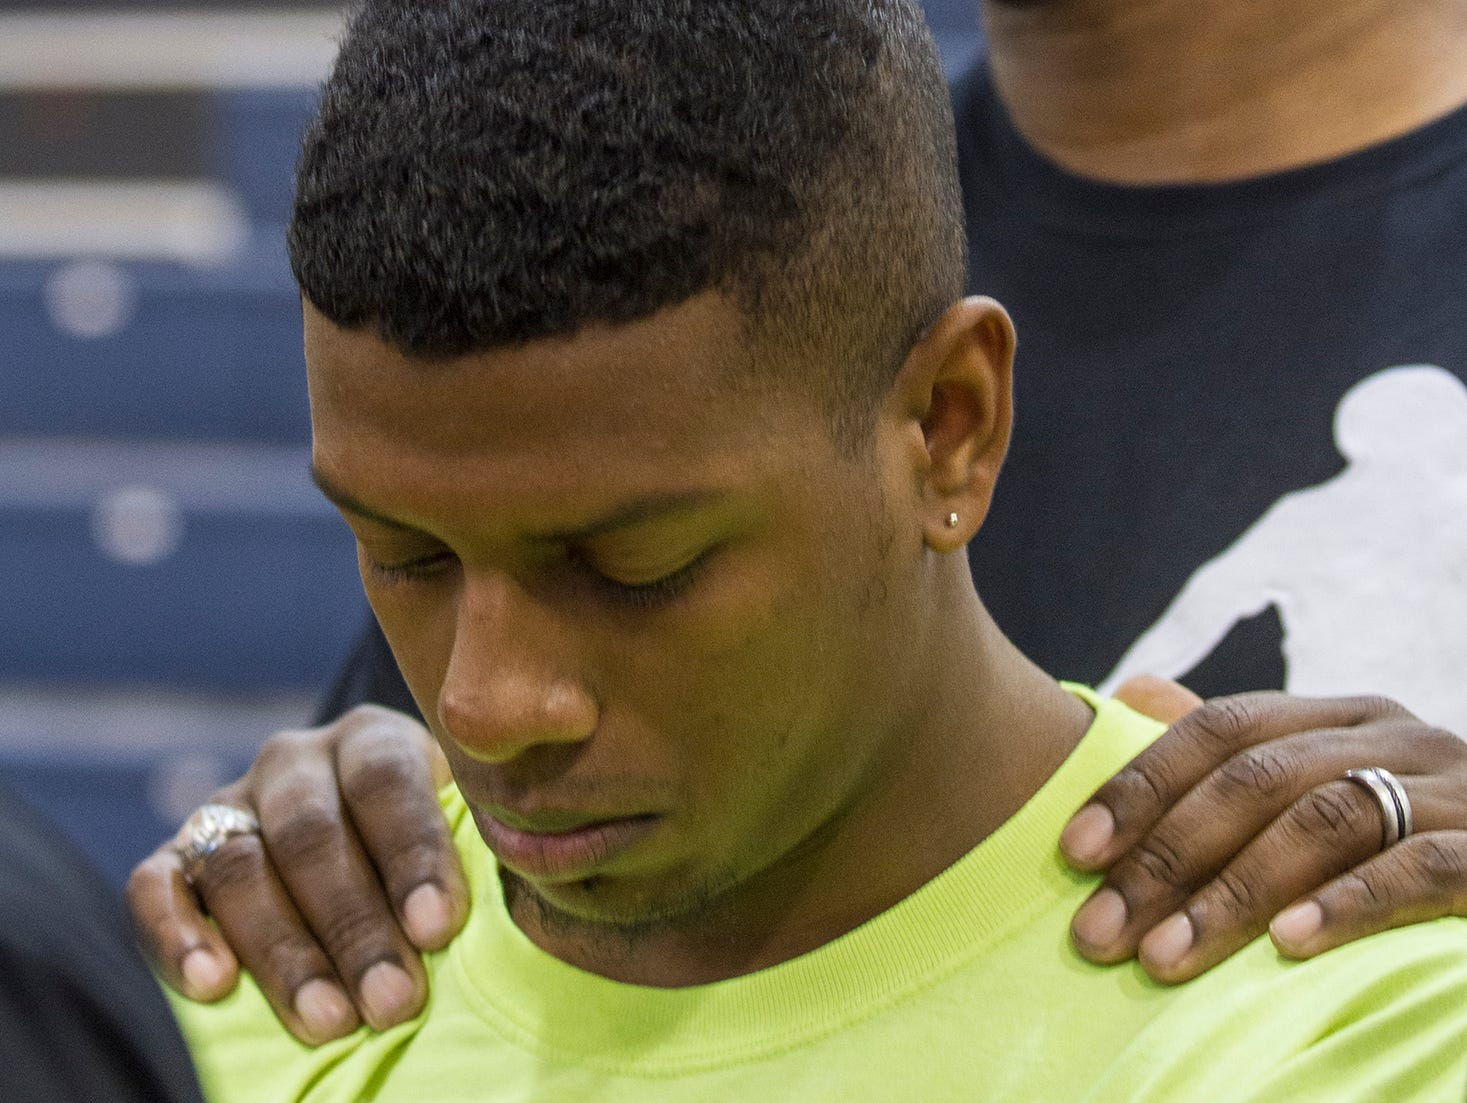 Alex Debnam, 19, a friend and former teammate of Stef'An Strawder, is comforted by Bernard Edwards, a parent of one of his teammates, during a press conference at the Lehigh Senior High School gym Monday afternoon. School administration, parents and teammates were in hand to share their feelings about the loss of Strawder during a shooting Monday morning in Fort Myers.